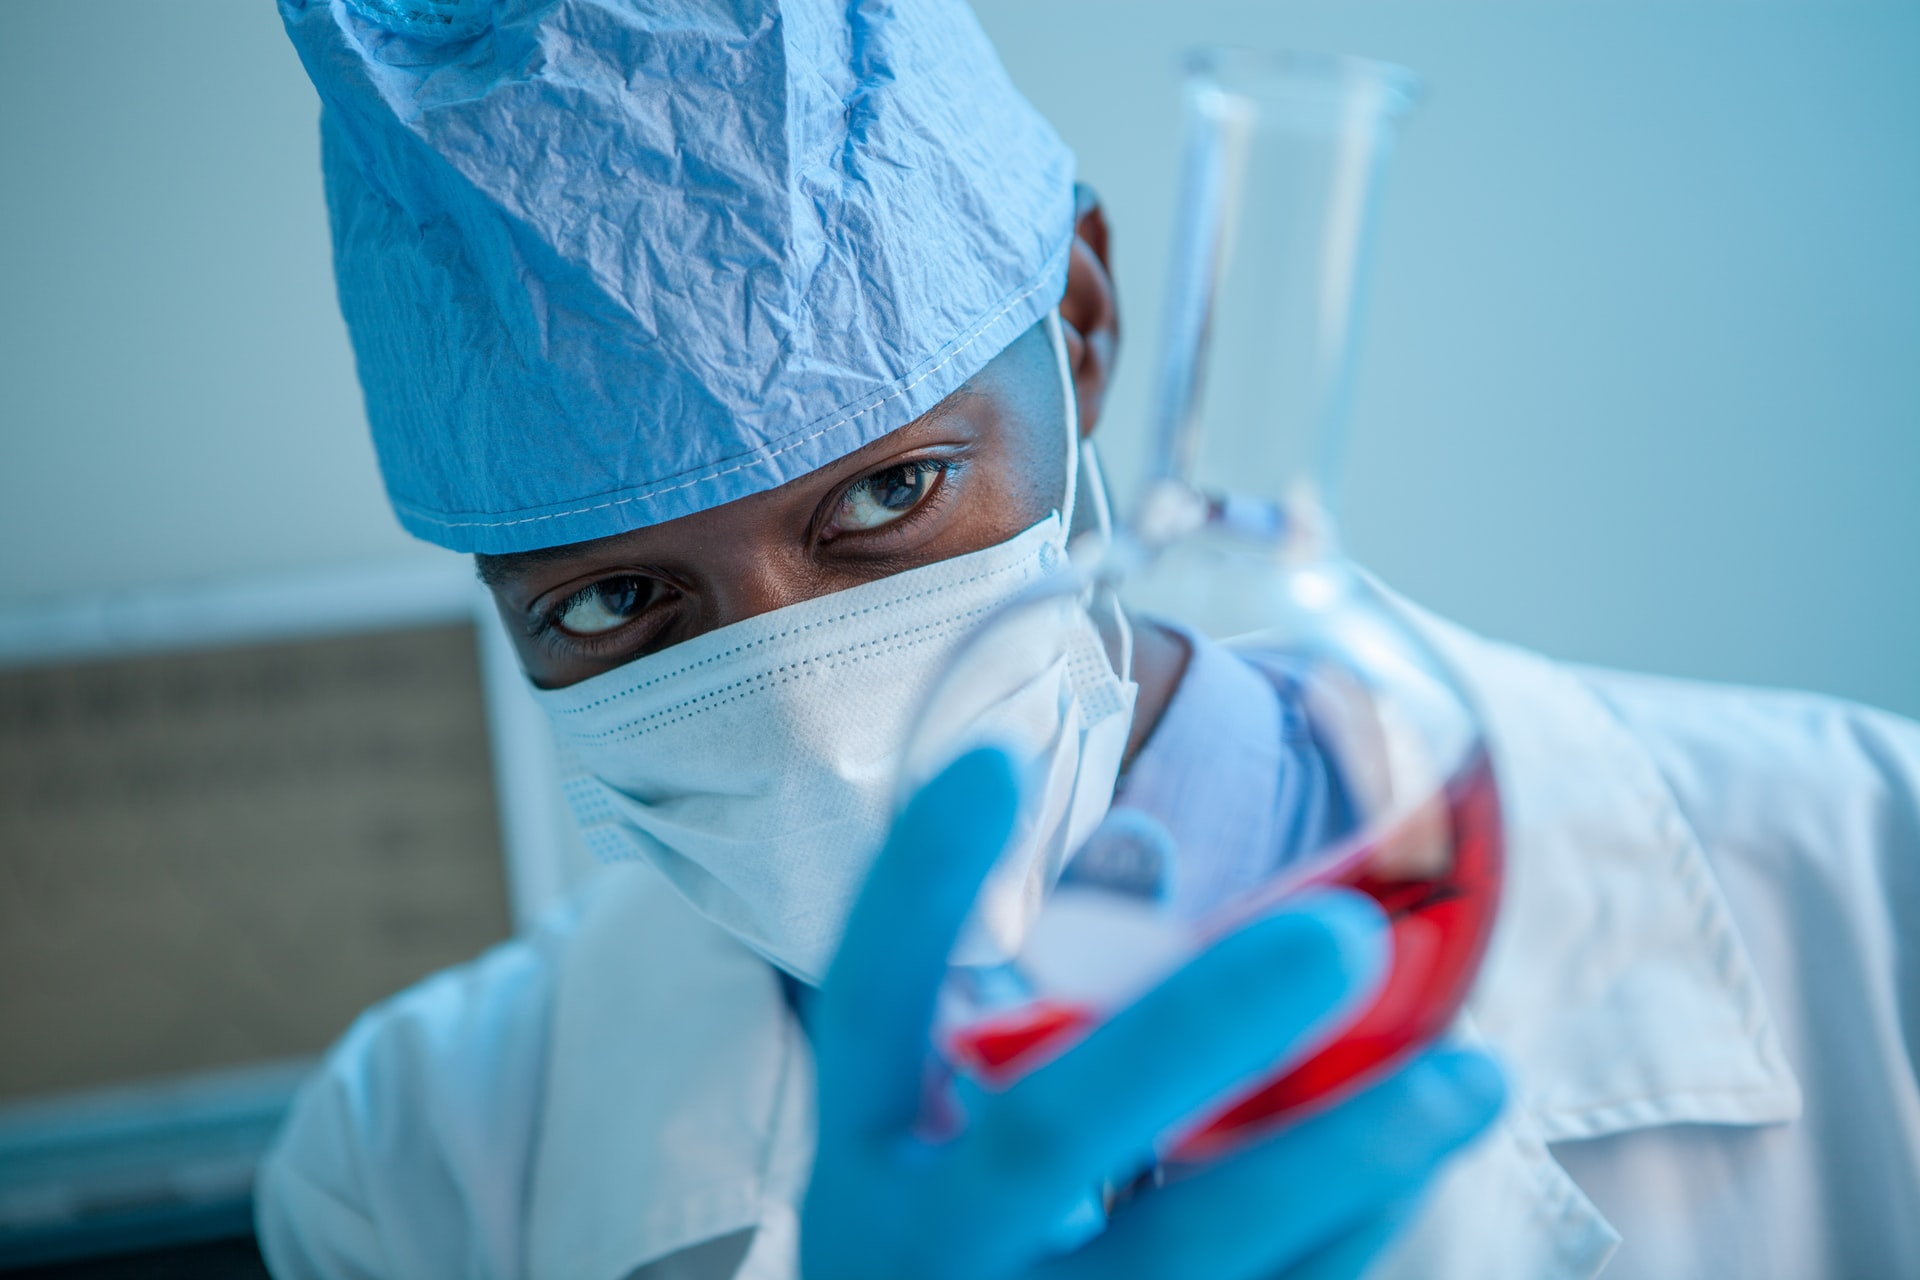 African Countries Look Beyond West for Vaccines brandspurng